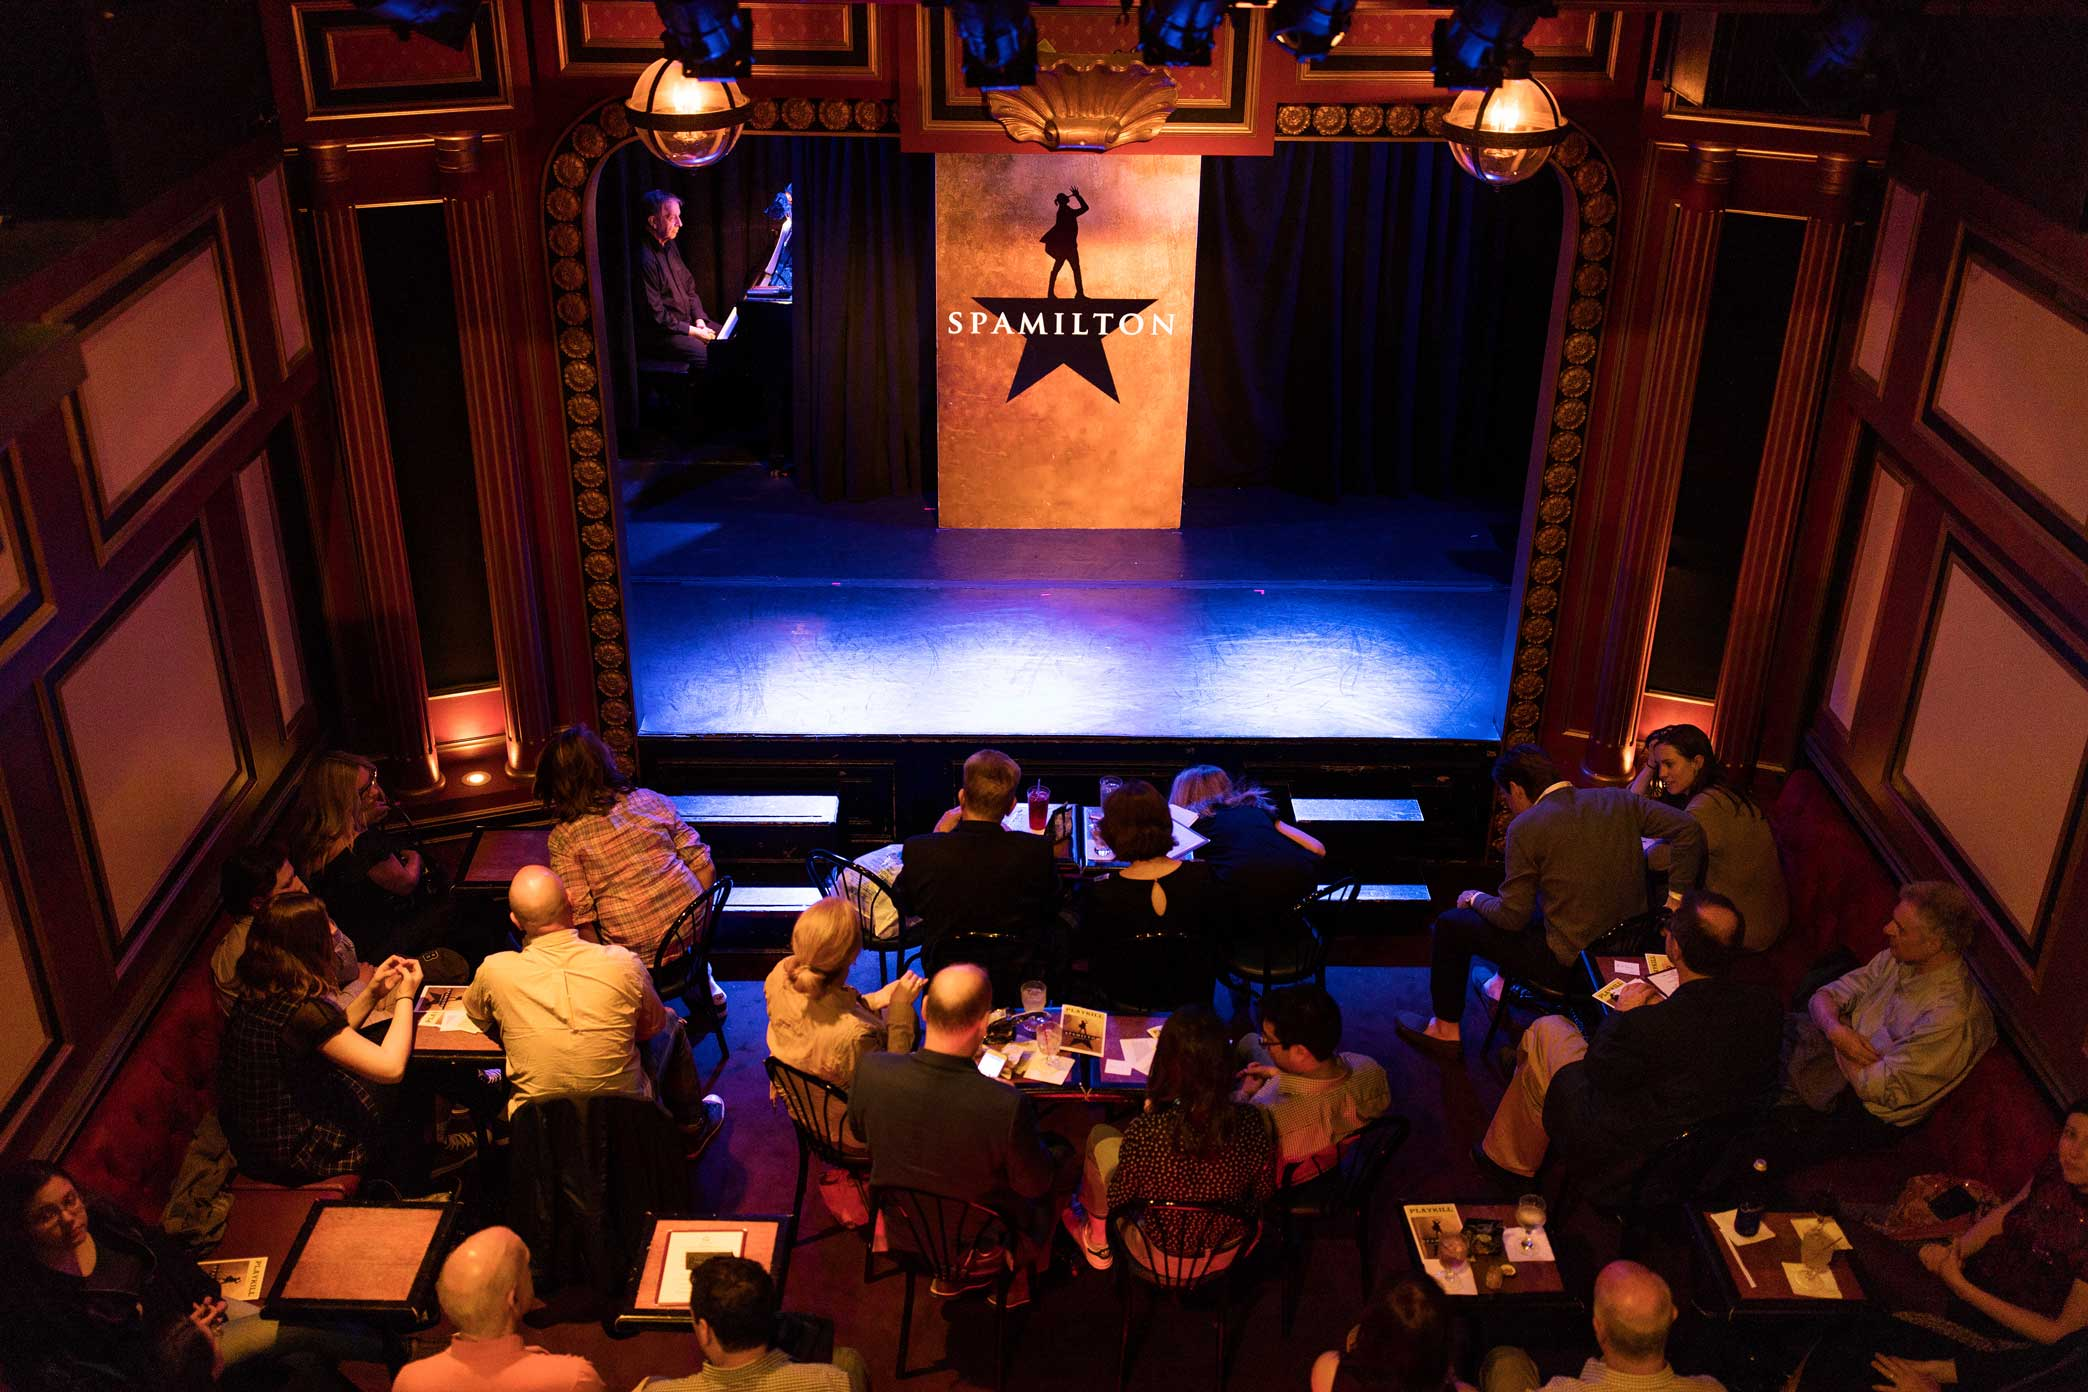 Audience members waiting for the start of Spamilton: An American parody and musical of the Broadway show Hamilton at The Triad in Manhattan.